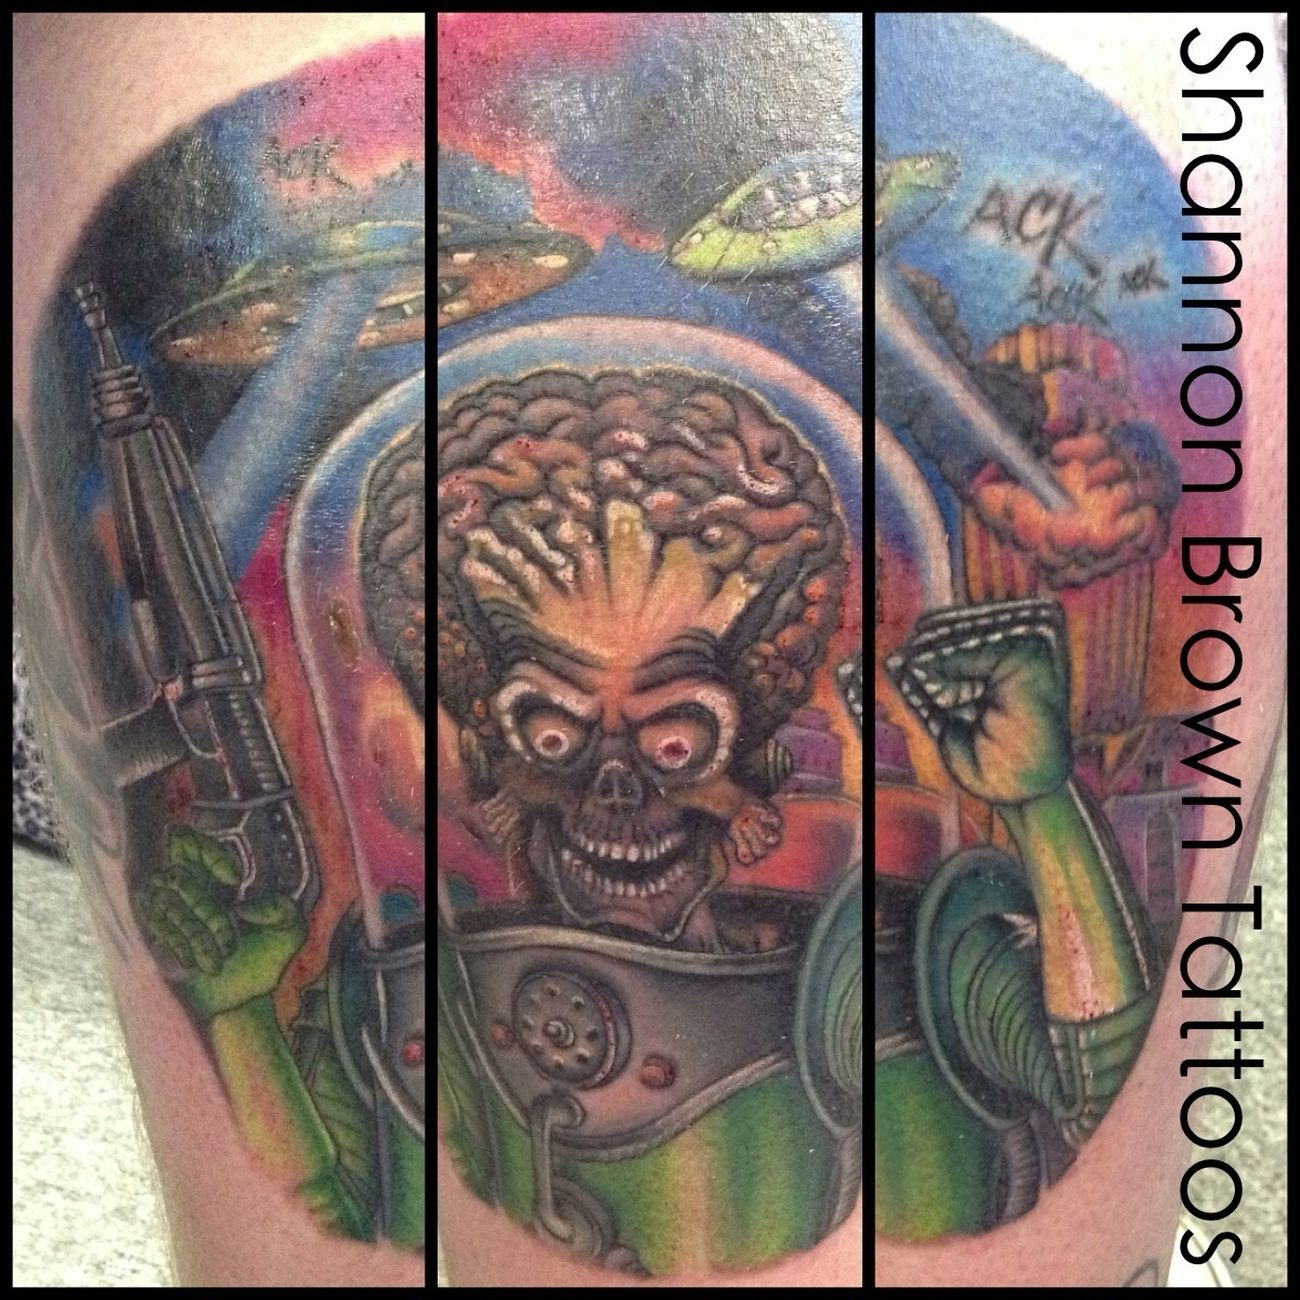 Tattoo New Tattoo Mars Attacks Tattoos By Shannon Brown